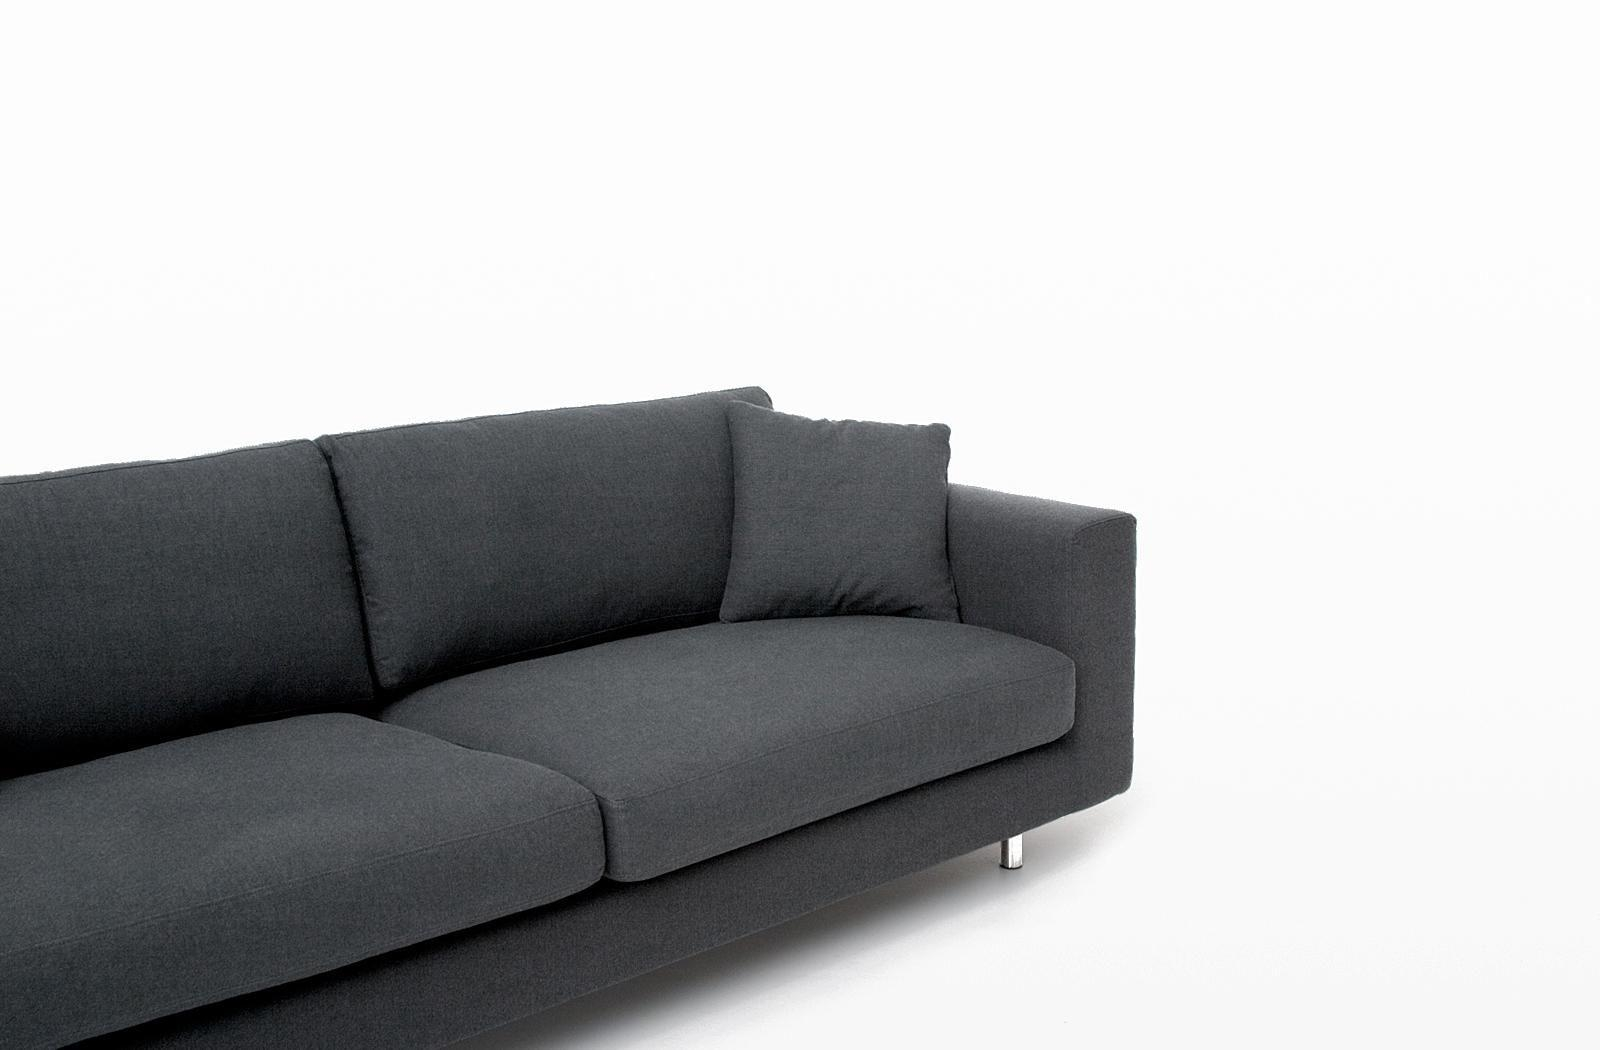 Contemporary Sofa / Fabric / 2 Seater / Black – Wide Arm – Bensen Throughout Bensen Sofas (View 15 of 20)